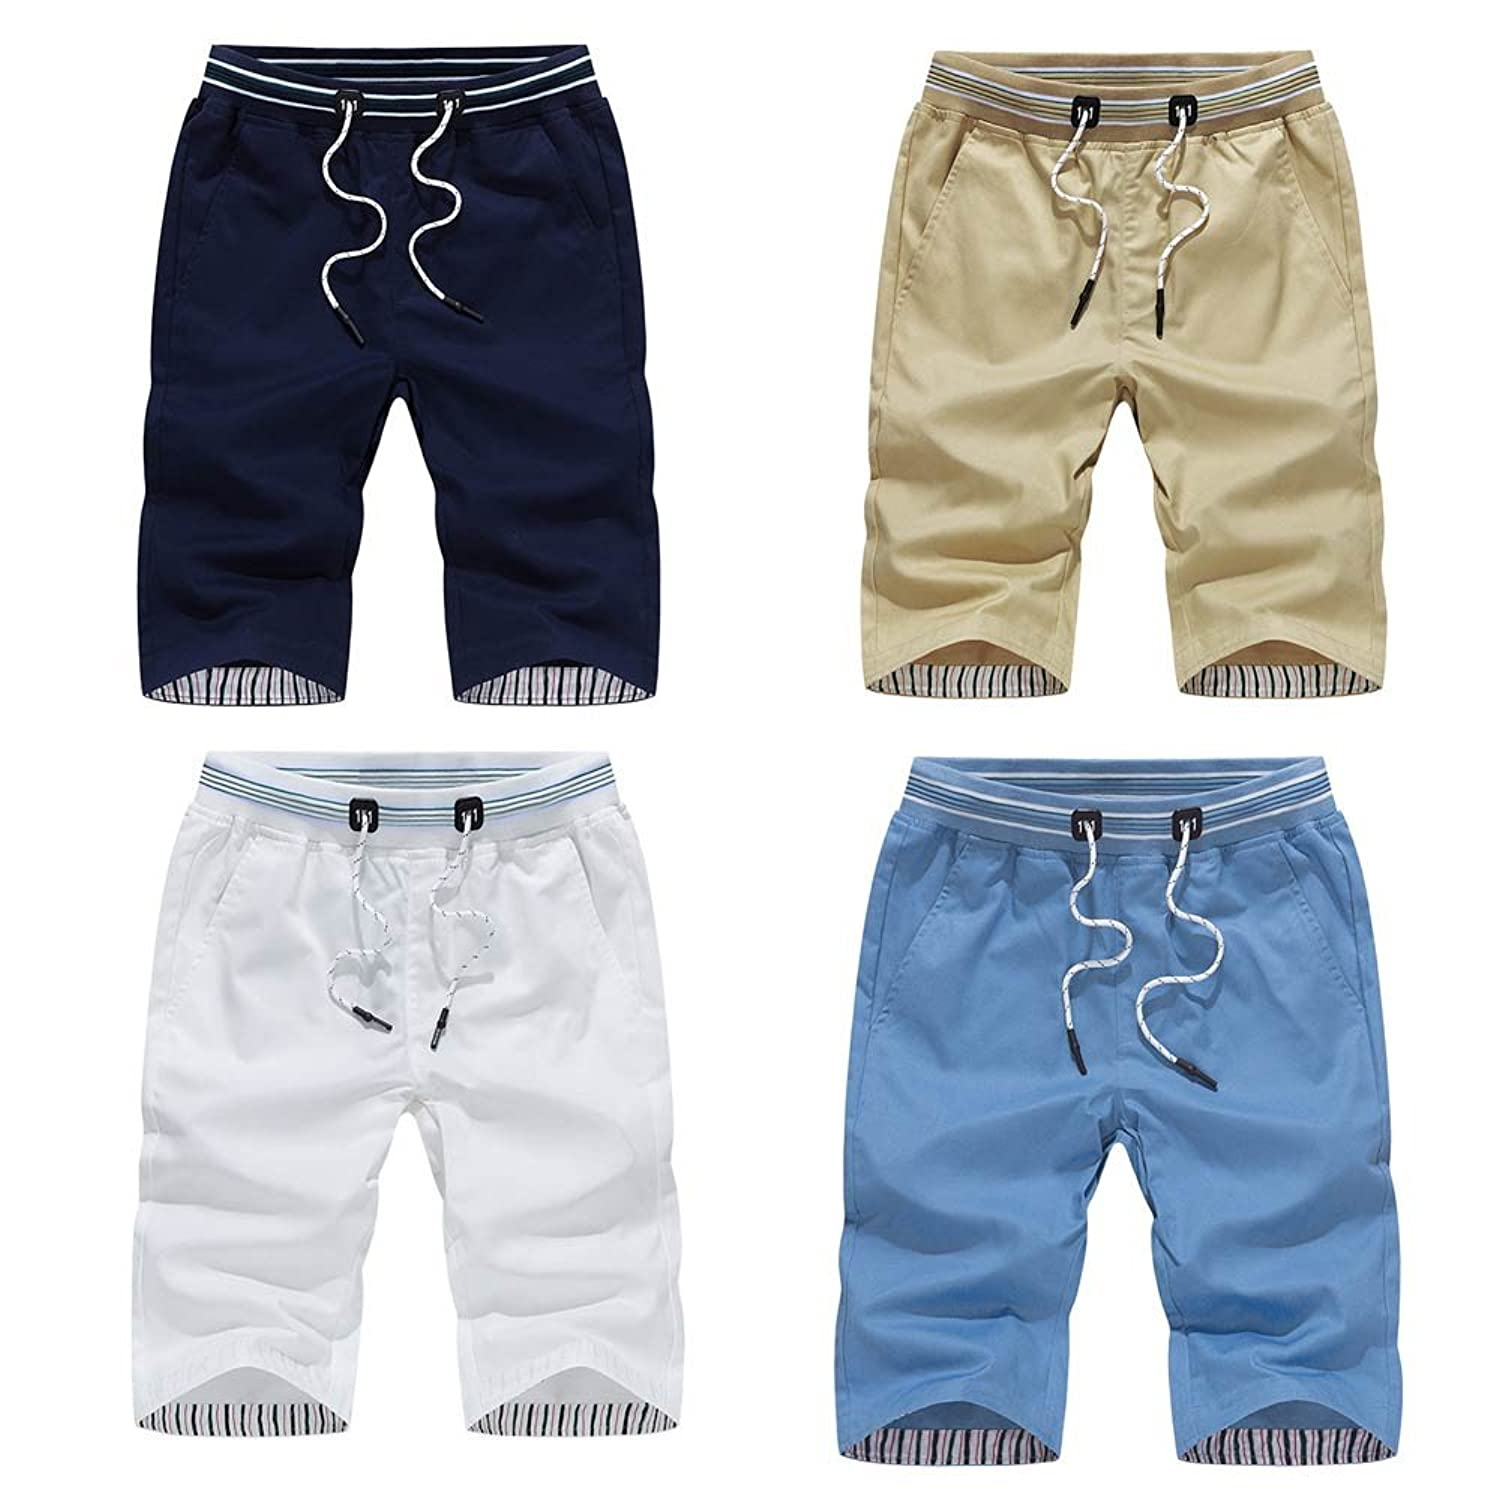 df3c92d05b17 Top 10 wholesale Branded Mens Shorts Online - Chinabrands.com